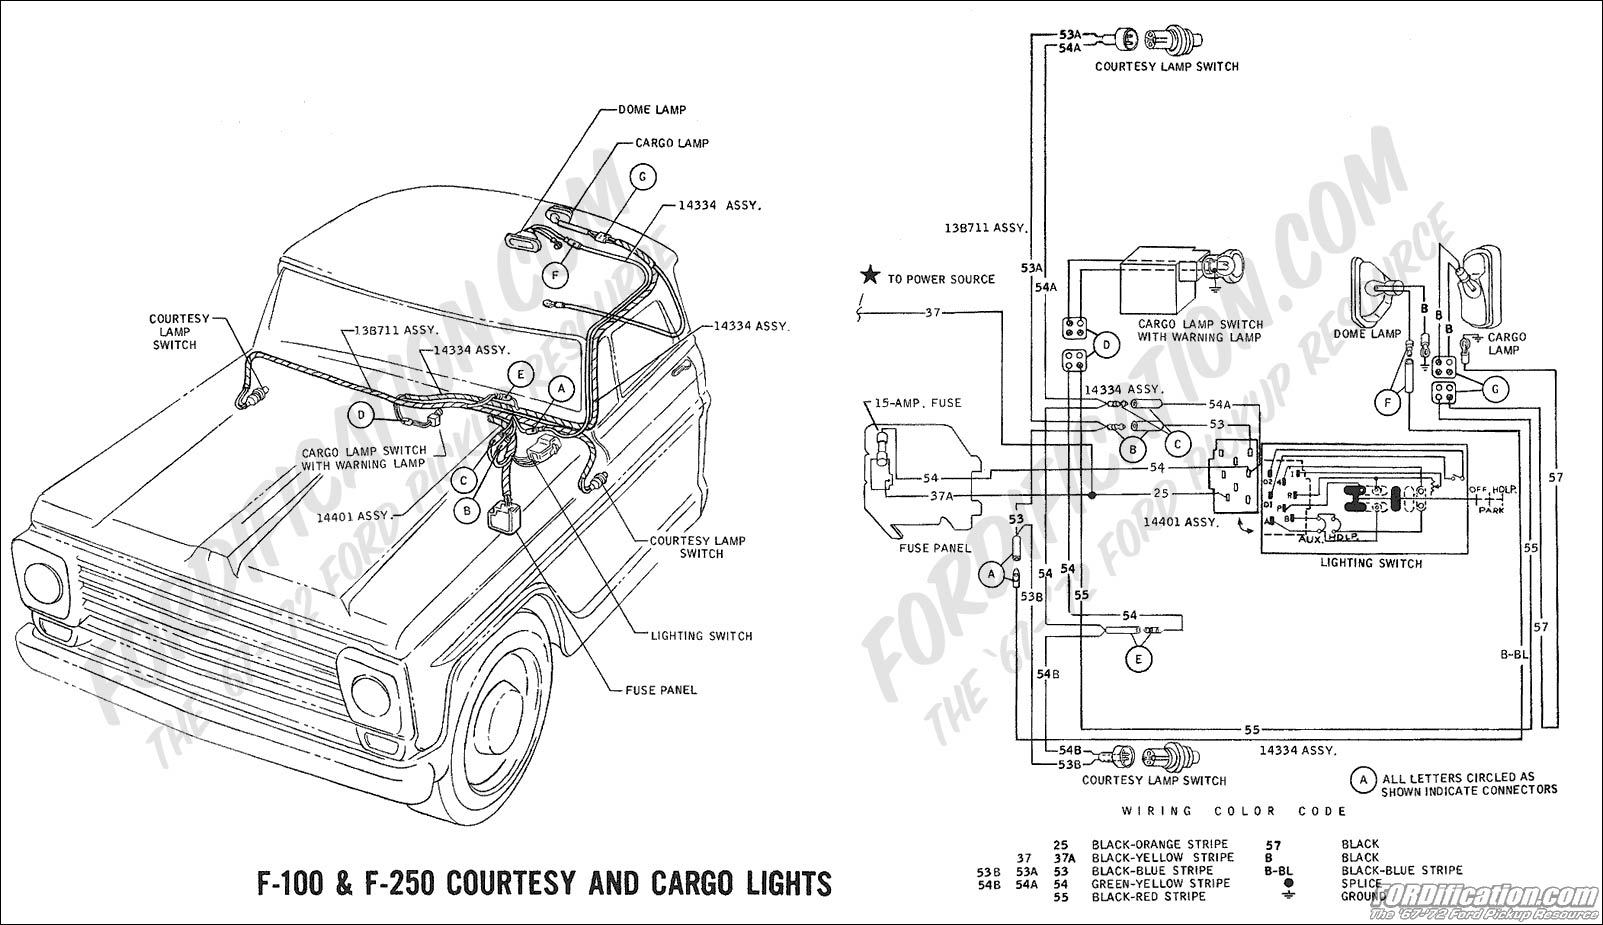 Ford Truck Technical Drawings and Schematics - Section H ... on jeep cj headlight switch diagram, headlight socket diagram, ford headlight adjustment, 1956 chevy headlight switch diagram, ford rear brakes diagram, ford wiring schematic, ford electrical wiring diagrams, ford truck electrical diagrams, ford f100 wiring diagrams, ford 302 distributor wiring, ford radiator diagram, ford headlight parts, ford headlight assembly, ford ignition coil diagram, ford gauge diagram, ford headlight relay, ford abs brake problems, ford headlight switch, ford f-250 electrical diagram, ford fuse diagram,